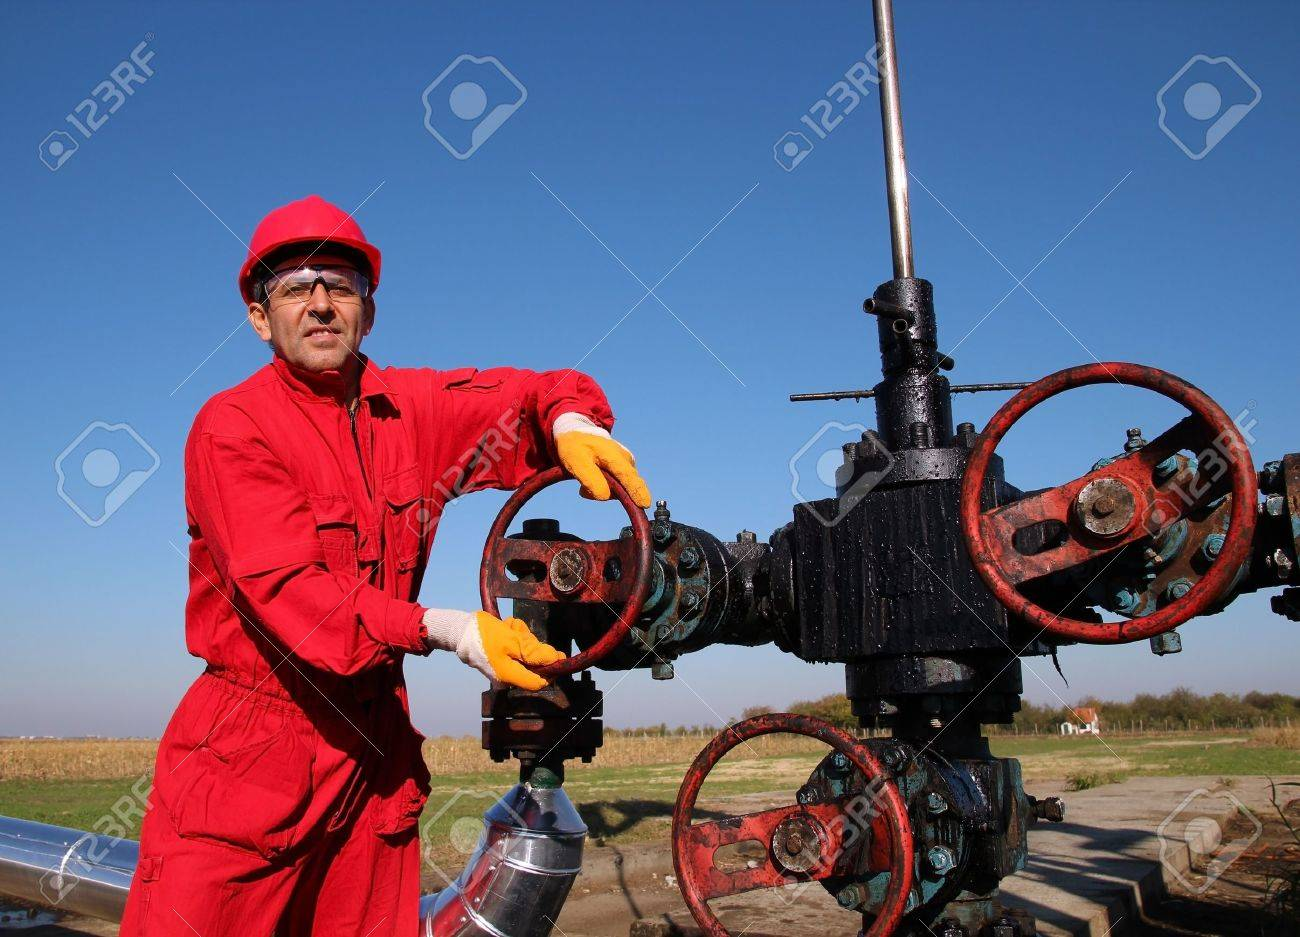 Oil and Gas Worker Wearing Protective Clothing - 18785952